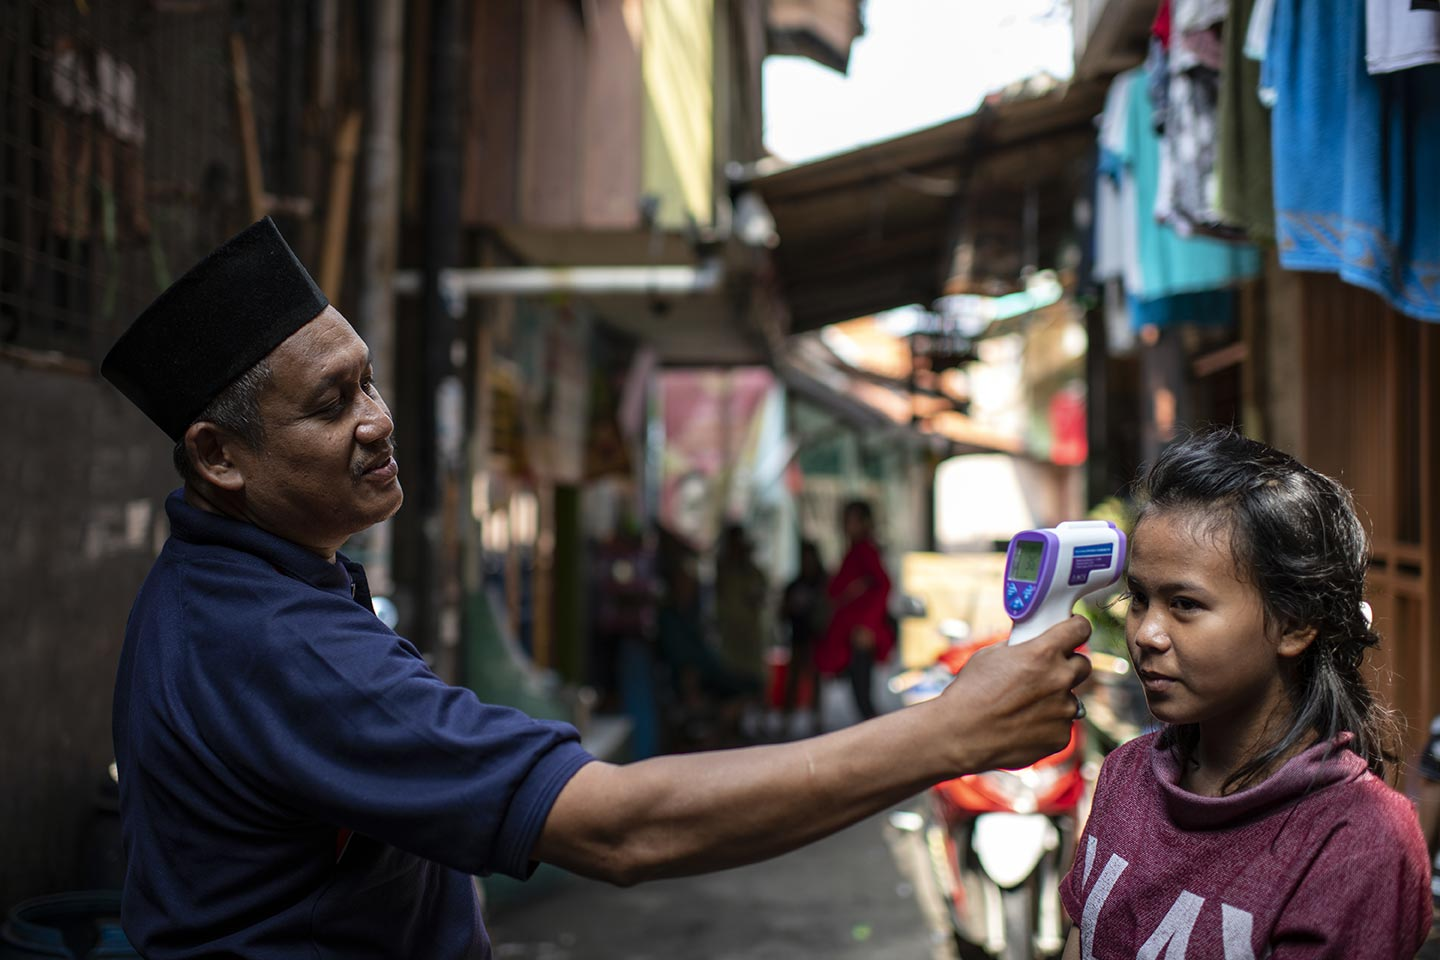 Sudirman, 55, head of RT (left) is checking Zahra temperature during the Covid-19 outbreak in slum area in West Jakarta, Indonesia on 1 April, 2020. Credit: UNICEF/2020/Arimacs Wilander